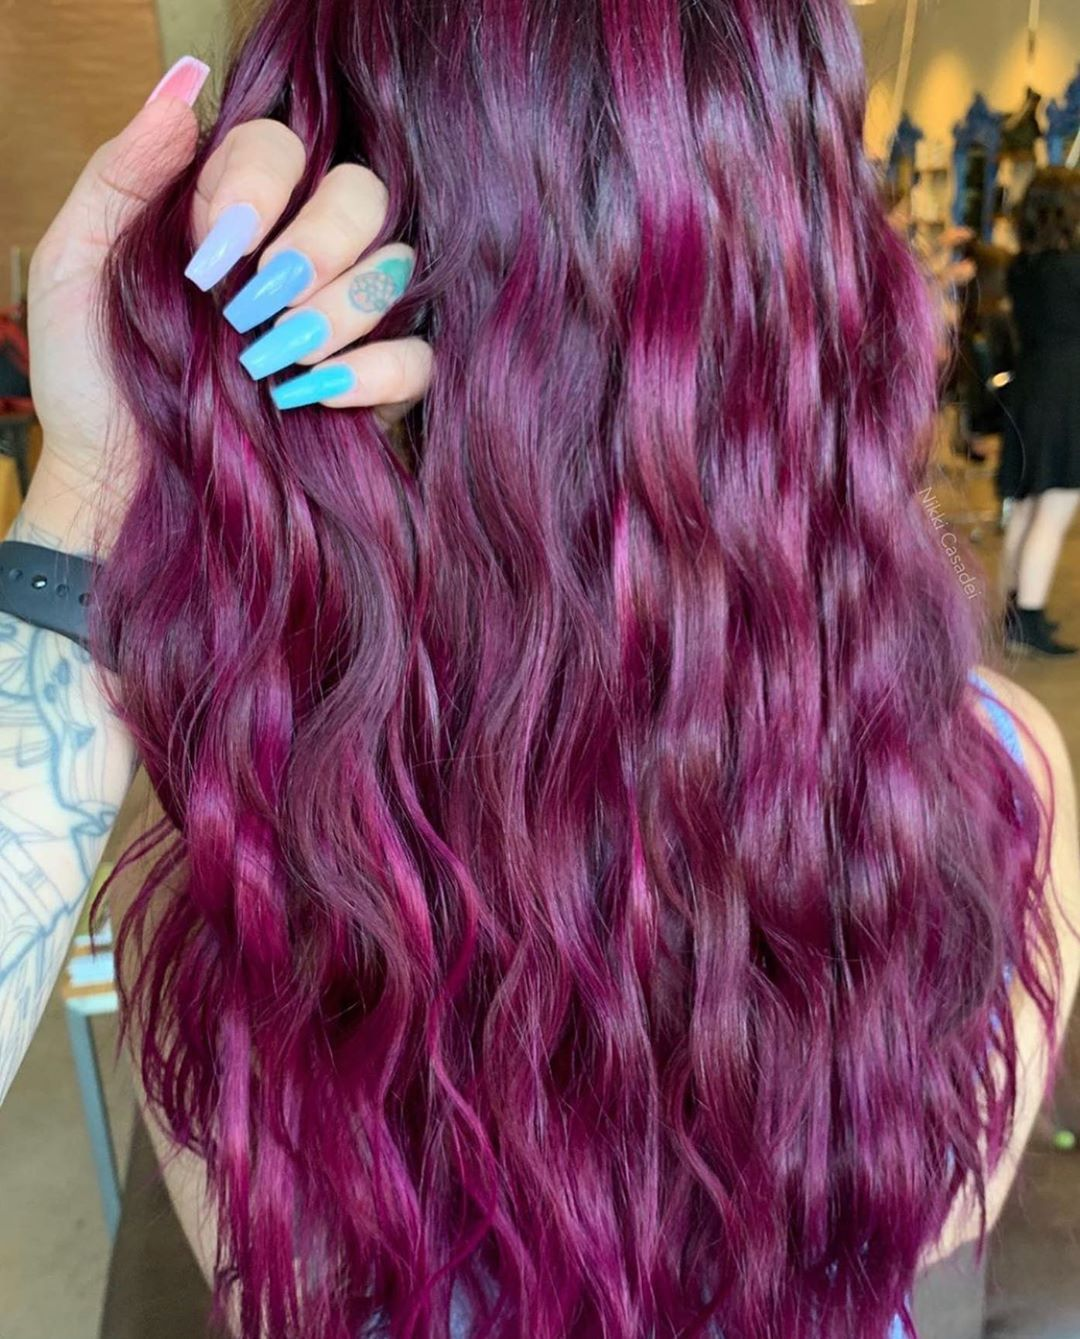 Equal Parts Magenta And Orchid On Level 6 Hair Look Radiant And